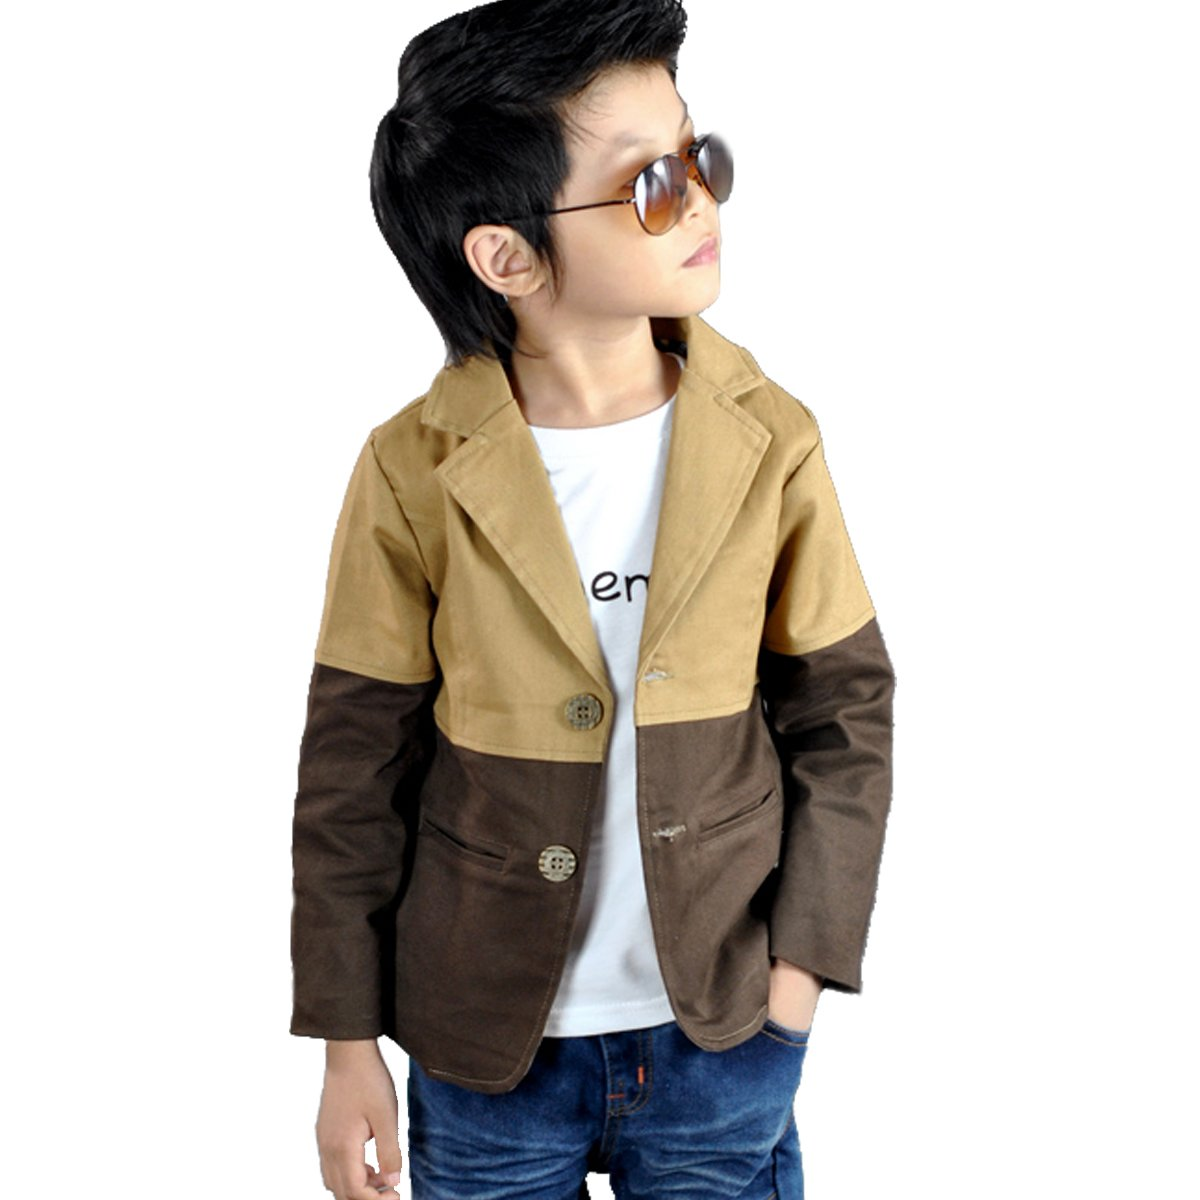 NABER Kids Boys Fashion Contract Color Outerwear Blazer Jacket Suit Age 4-12 Y